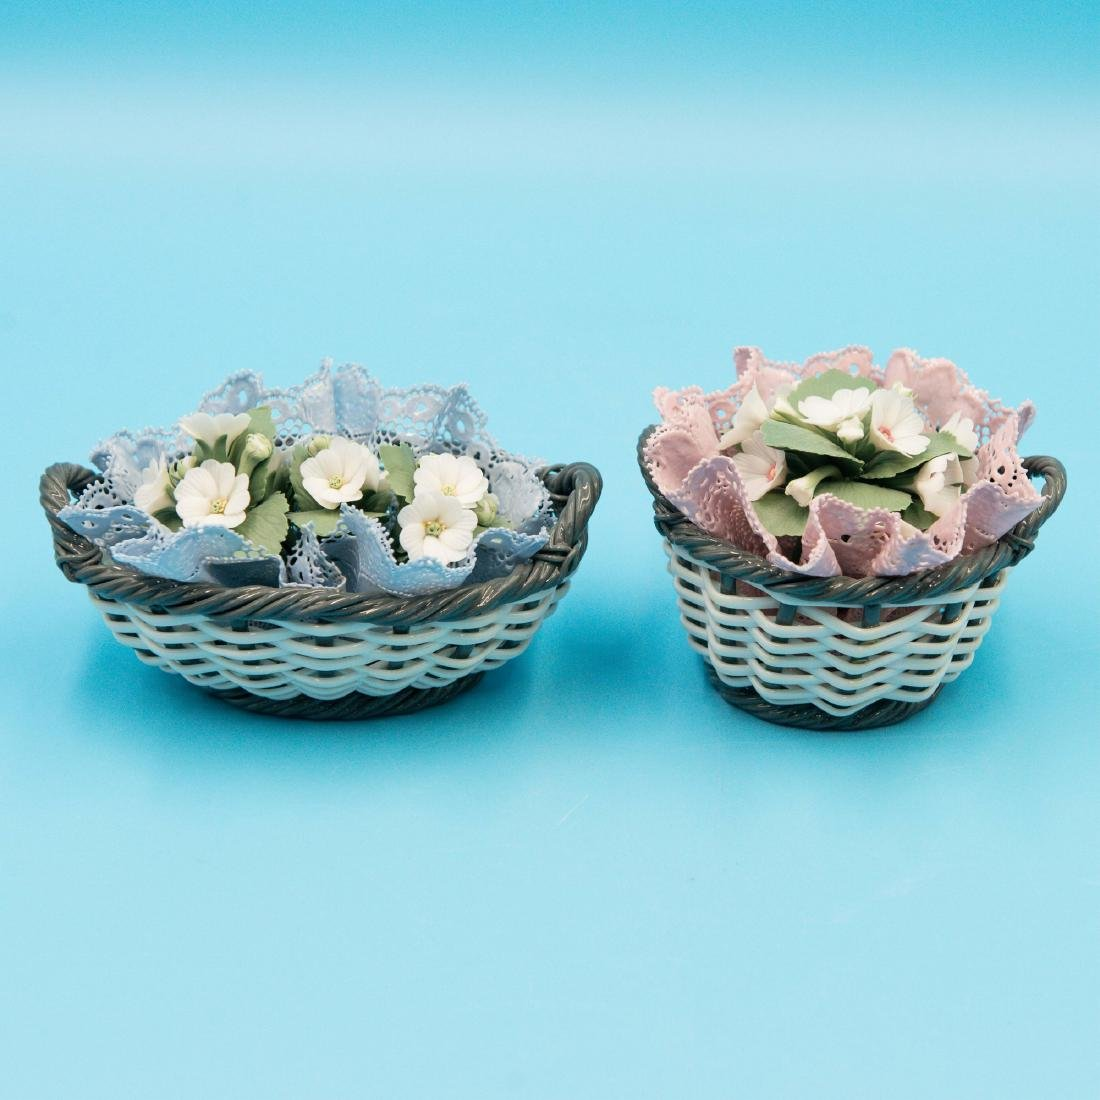 LLADRO 2 SMALL PORCELAIN FLOWER BASKETS - 2